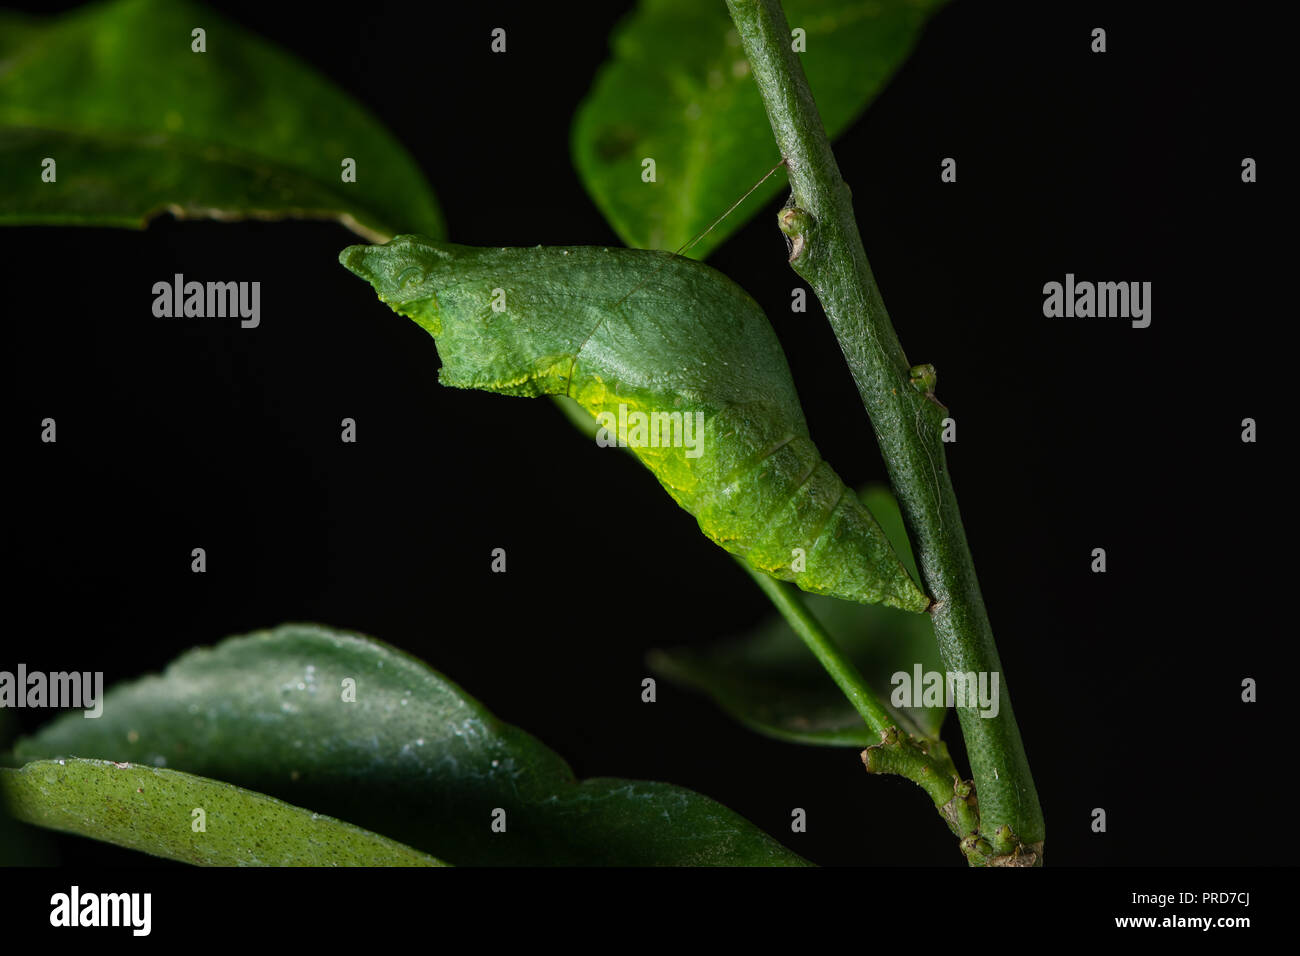 Two days old of Lime Swallowtail butterfly during pupal stage to become a butterfly - Stock Image